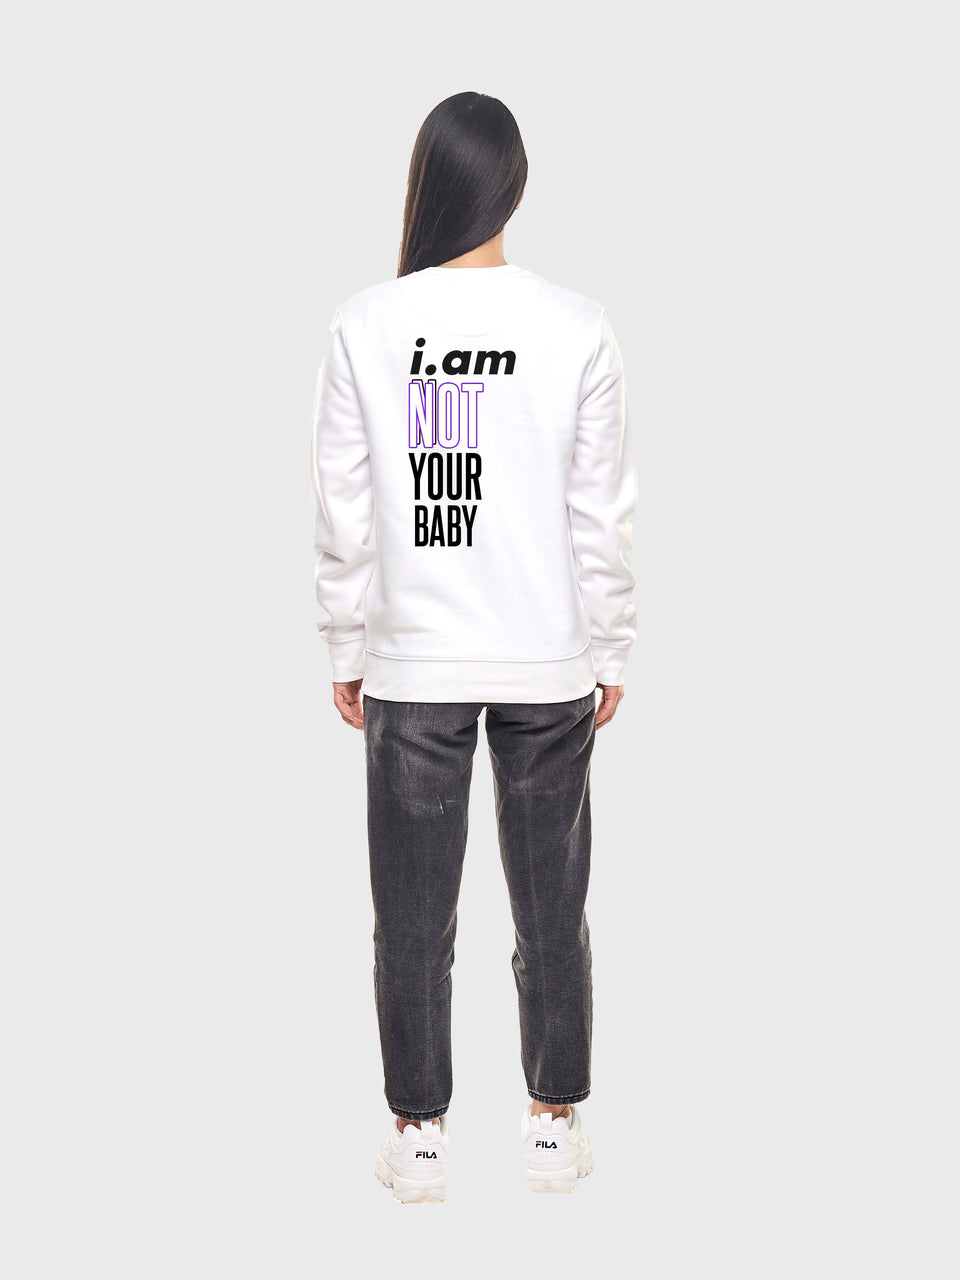 Not your baby - White - unisex sweatshirt